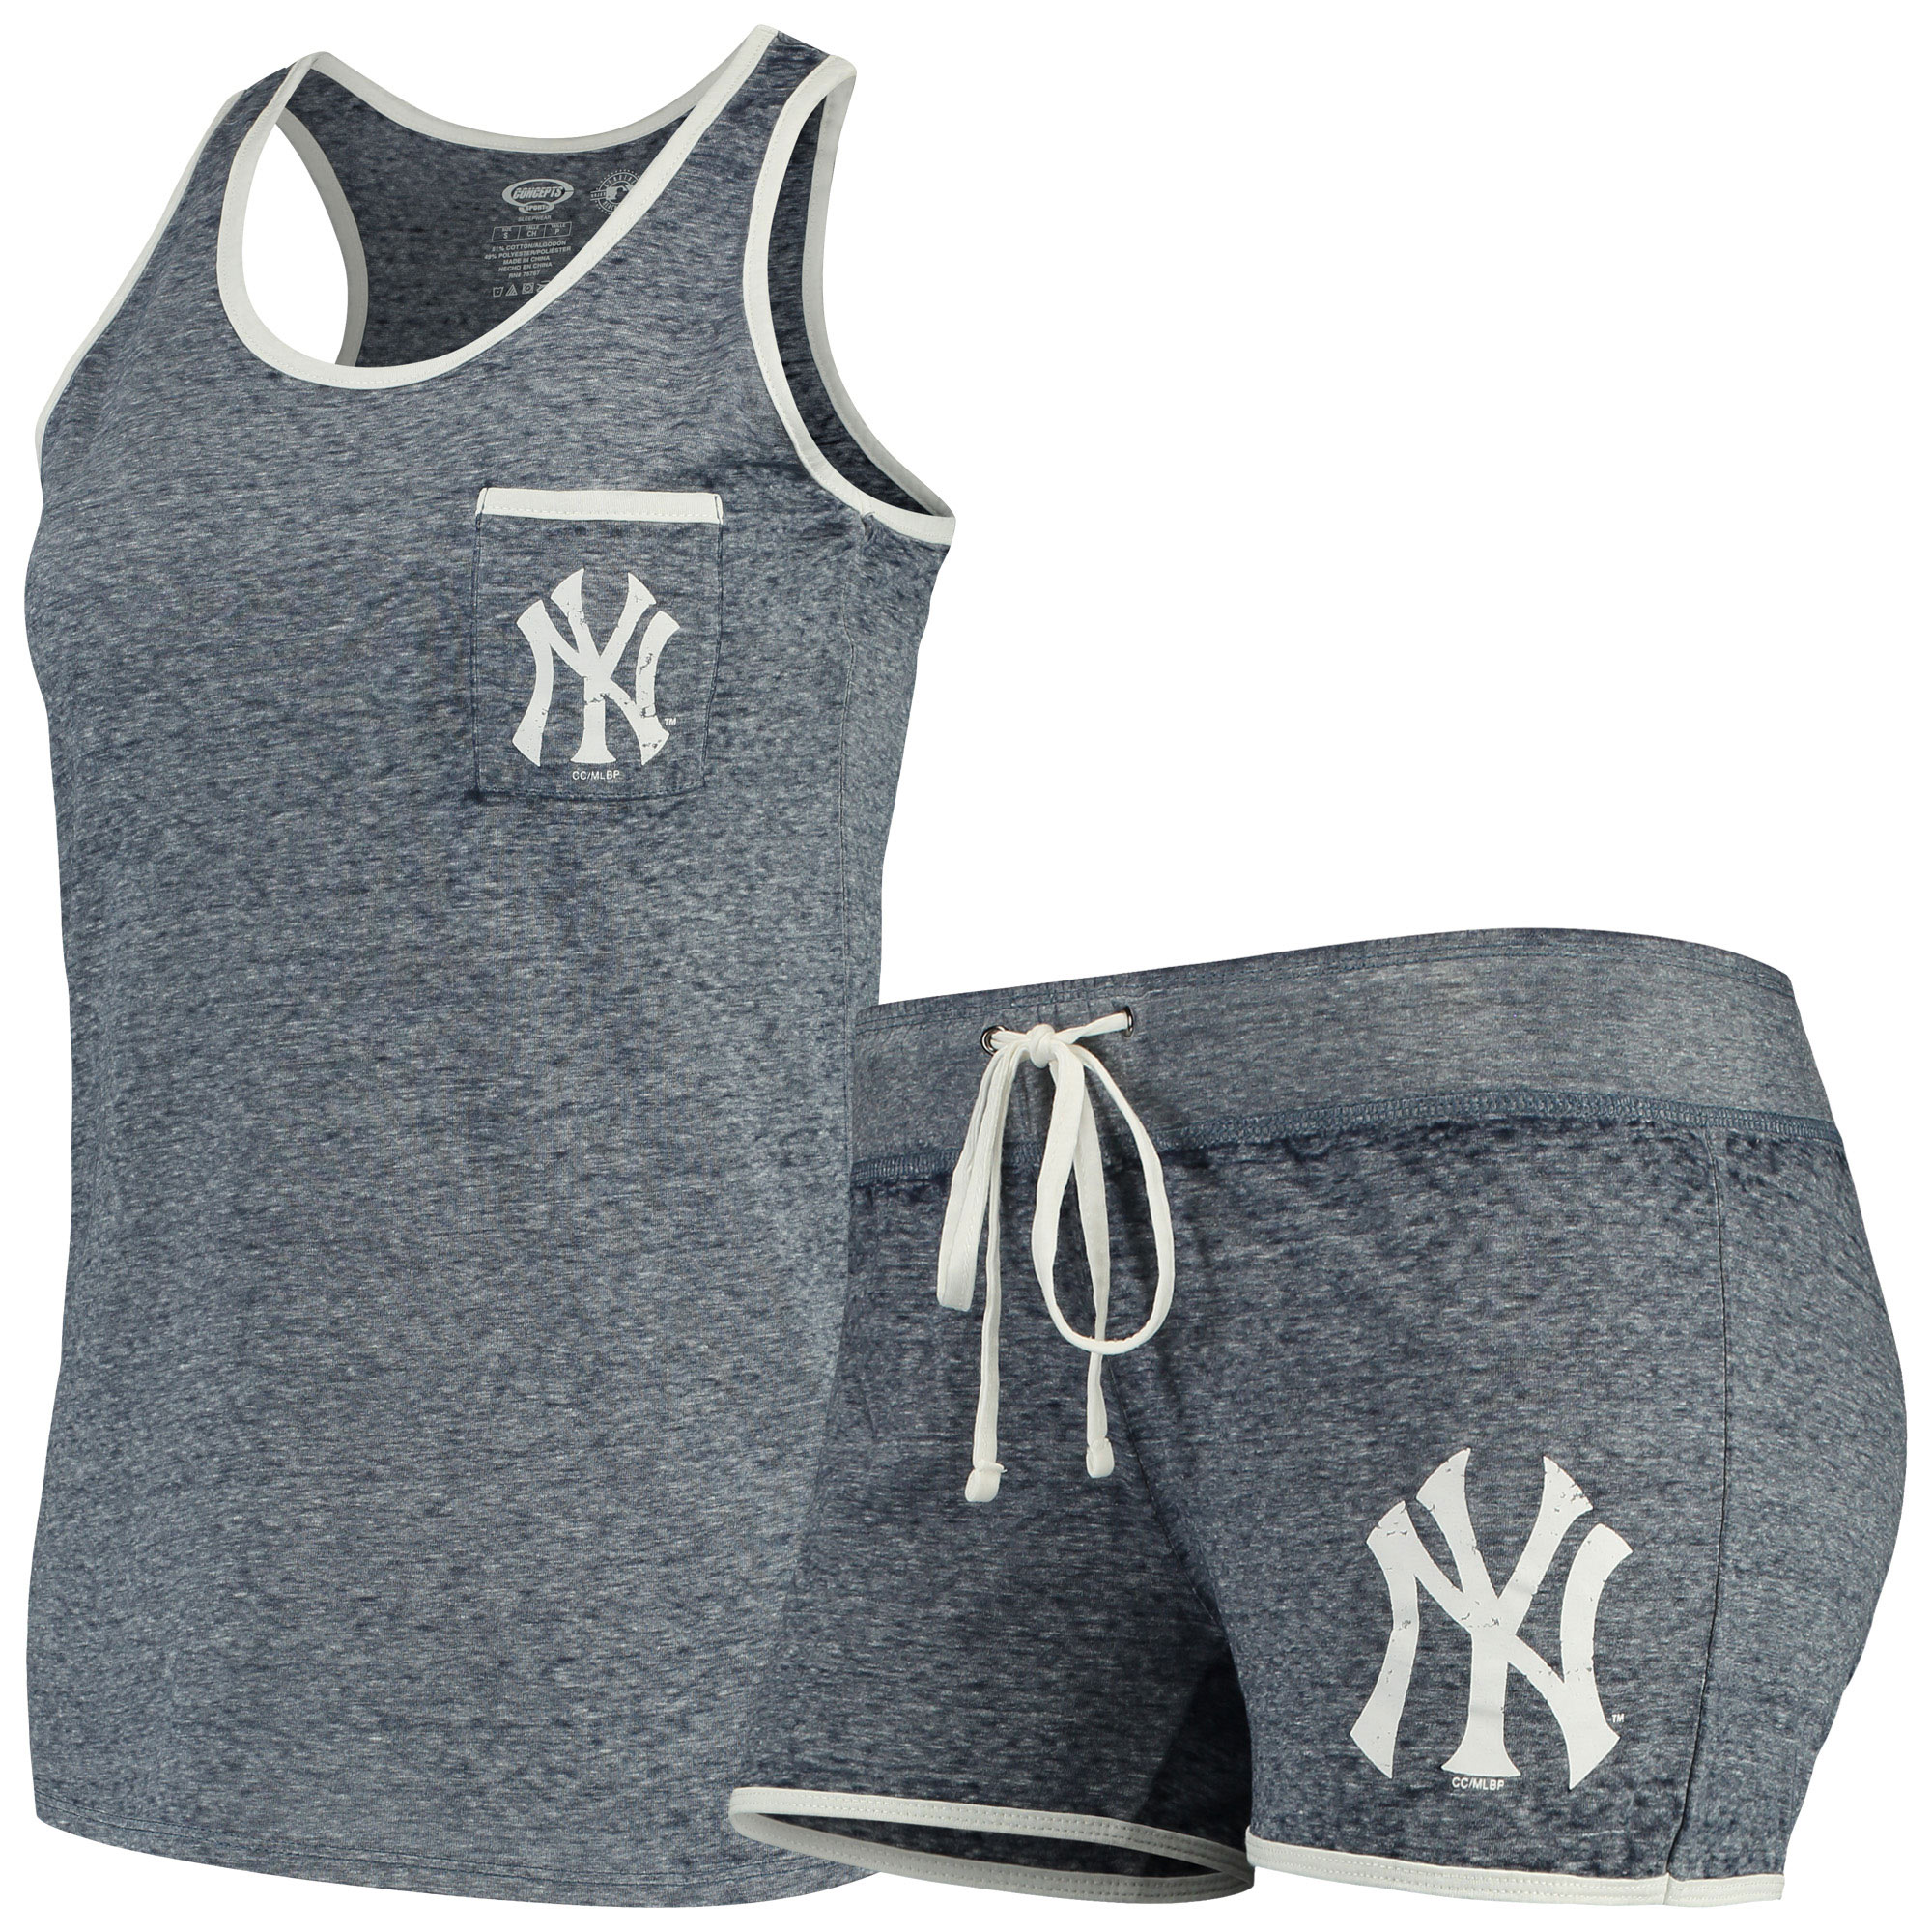 New York Yankees Concepts Sport Women's Squad Tank Top & Shorts Set - Heathered Navy